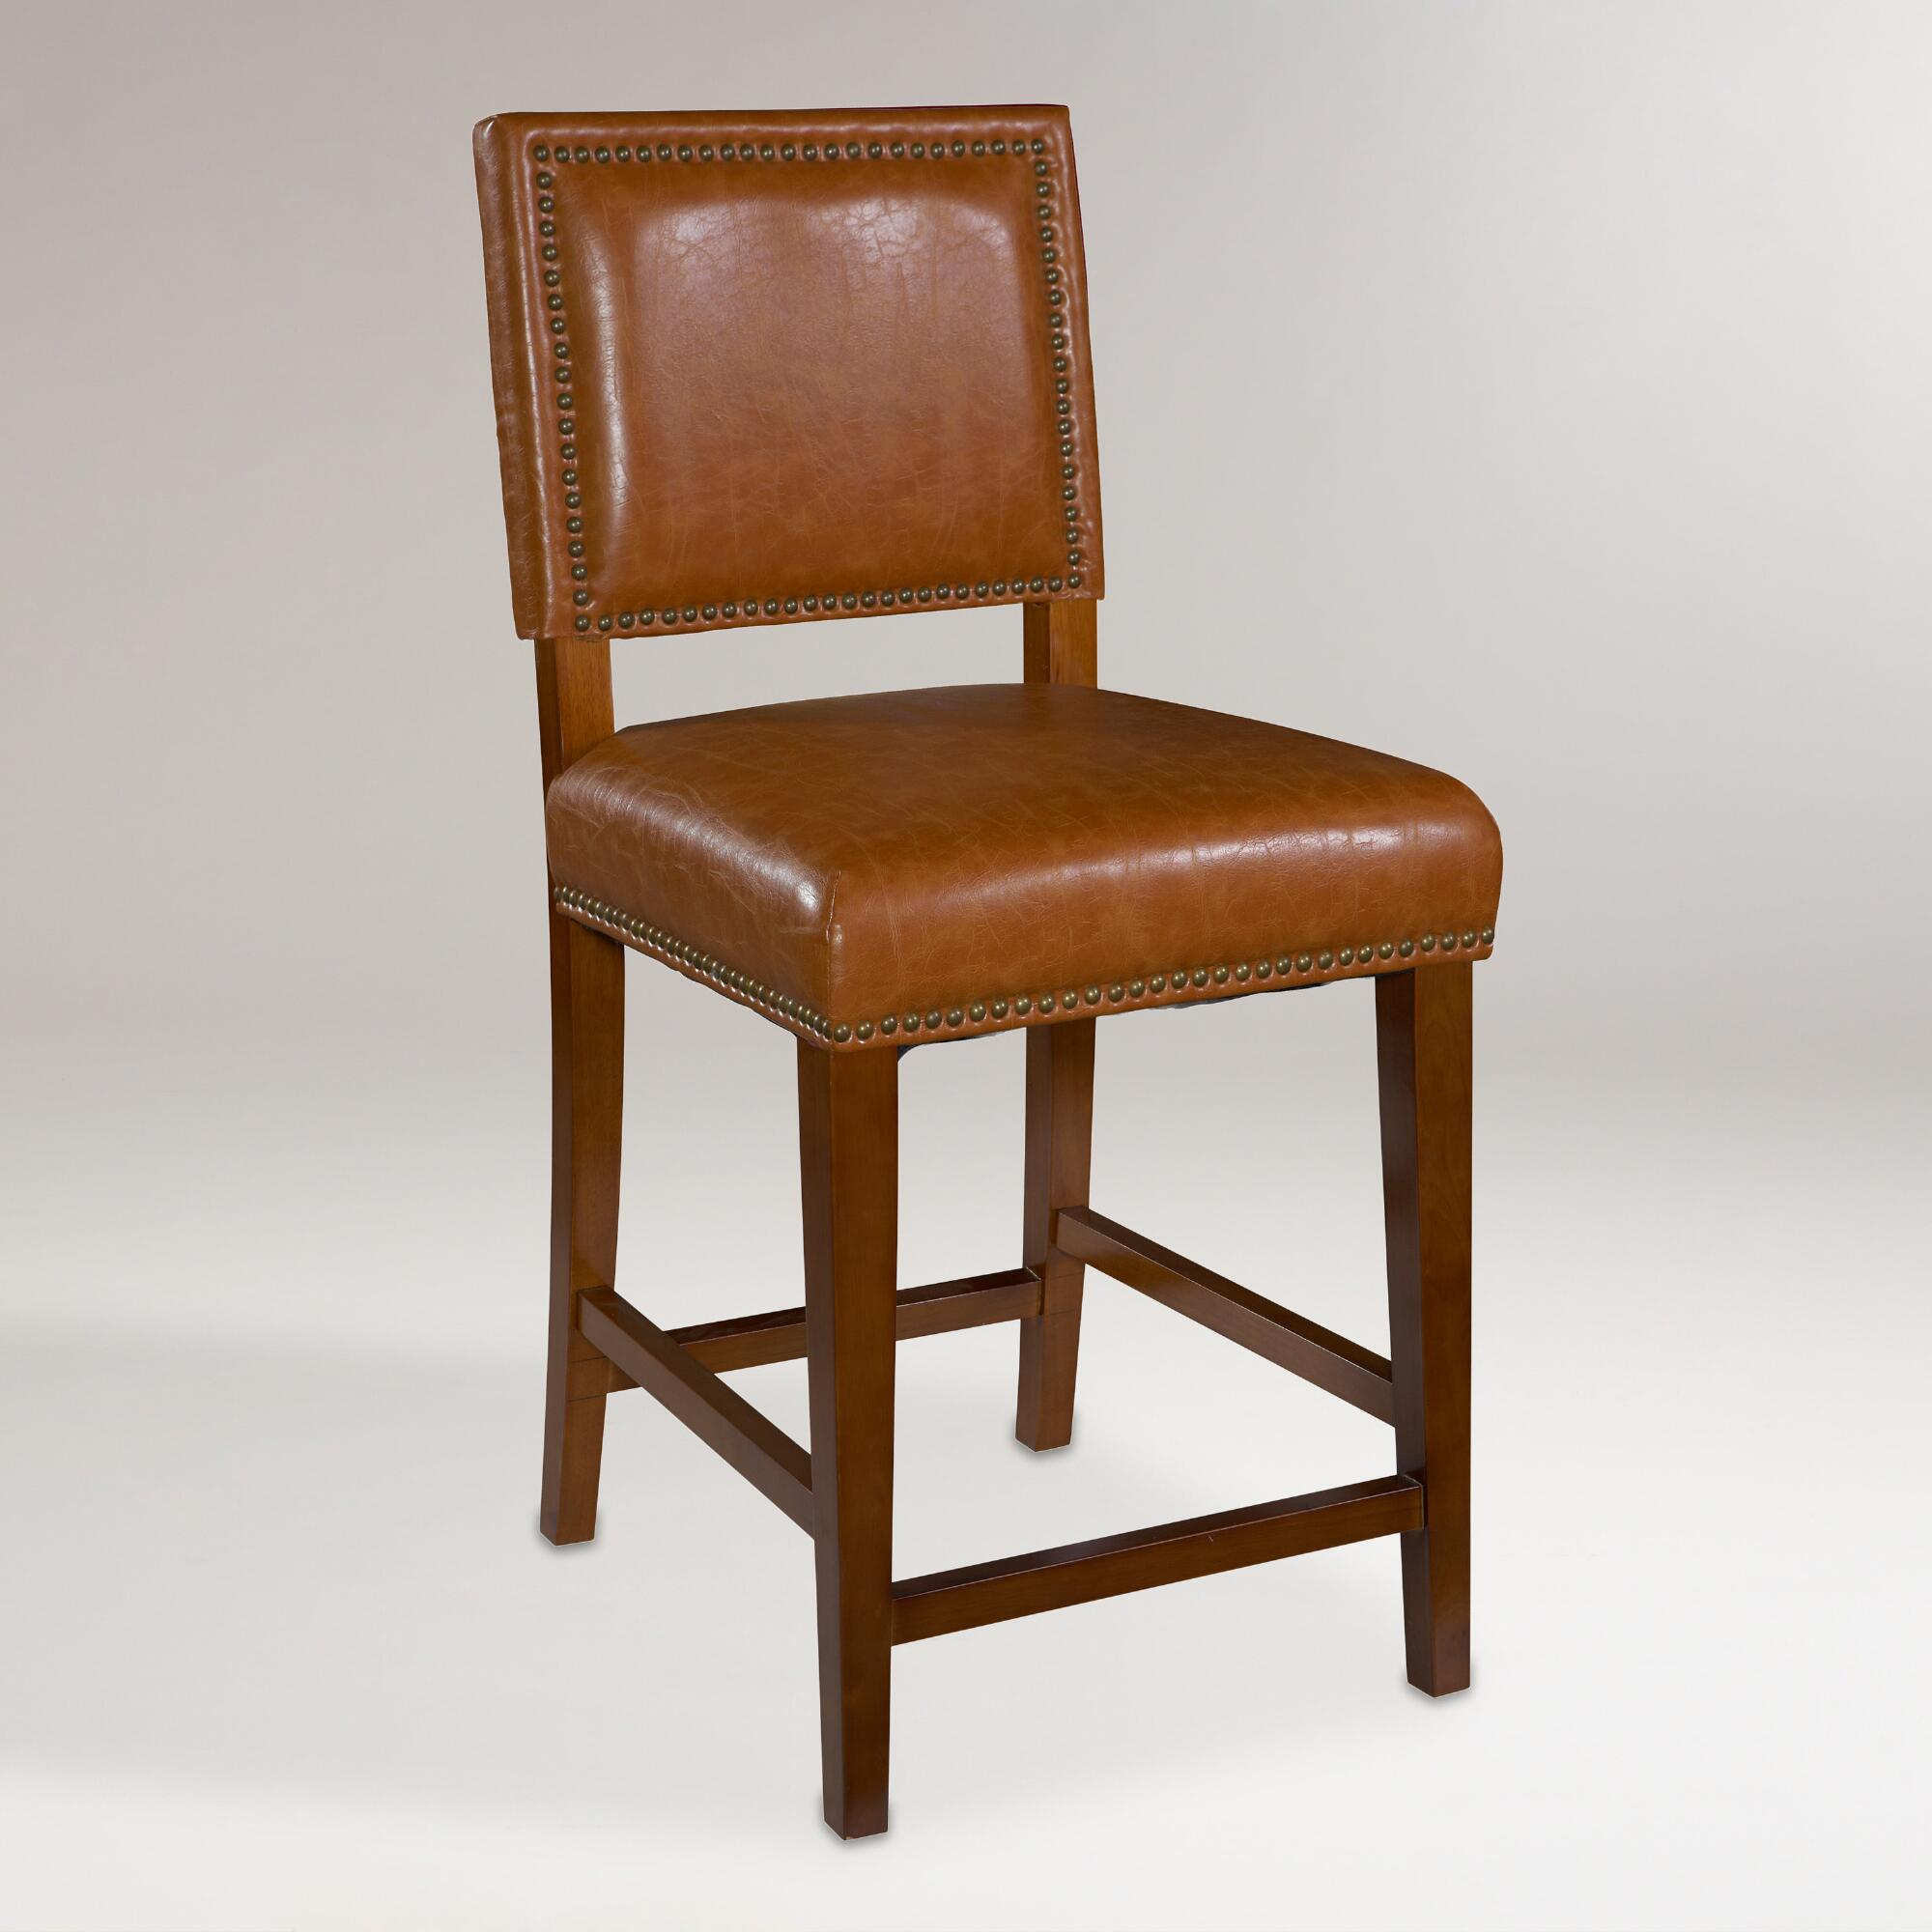 World Market Red Leather Chair: Caramel Jace Counter Stool